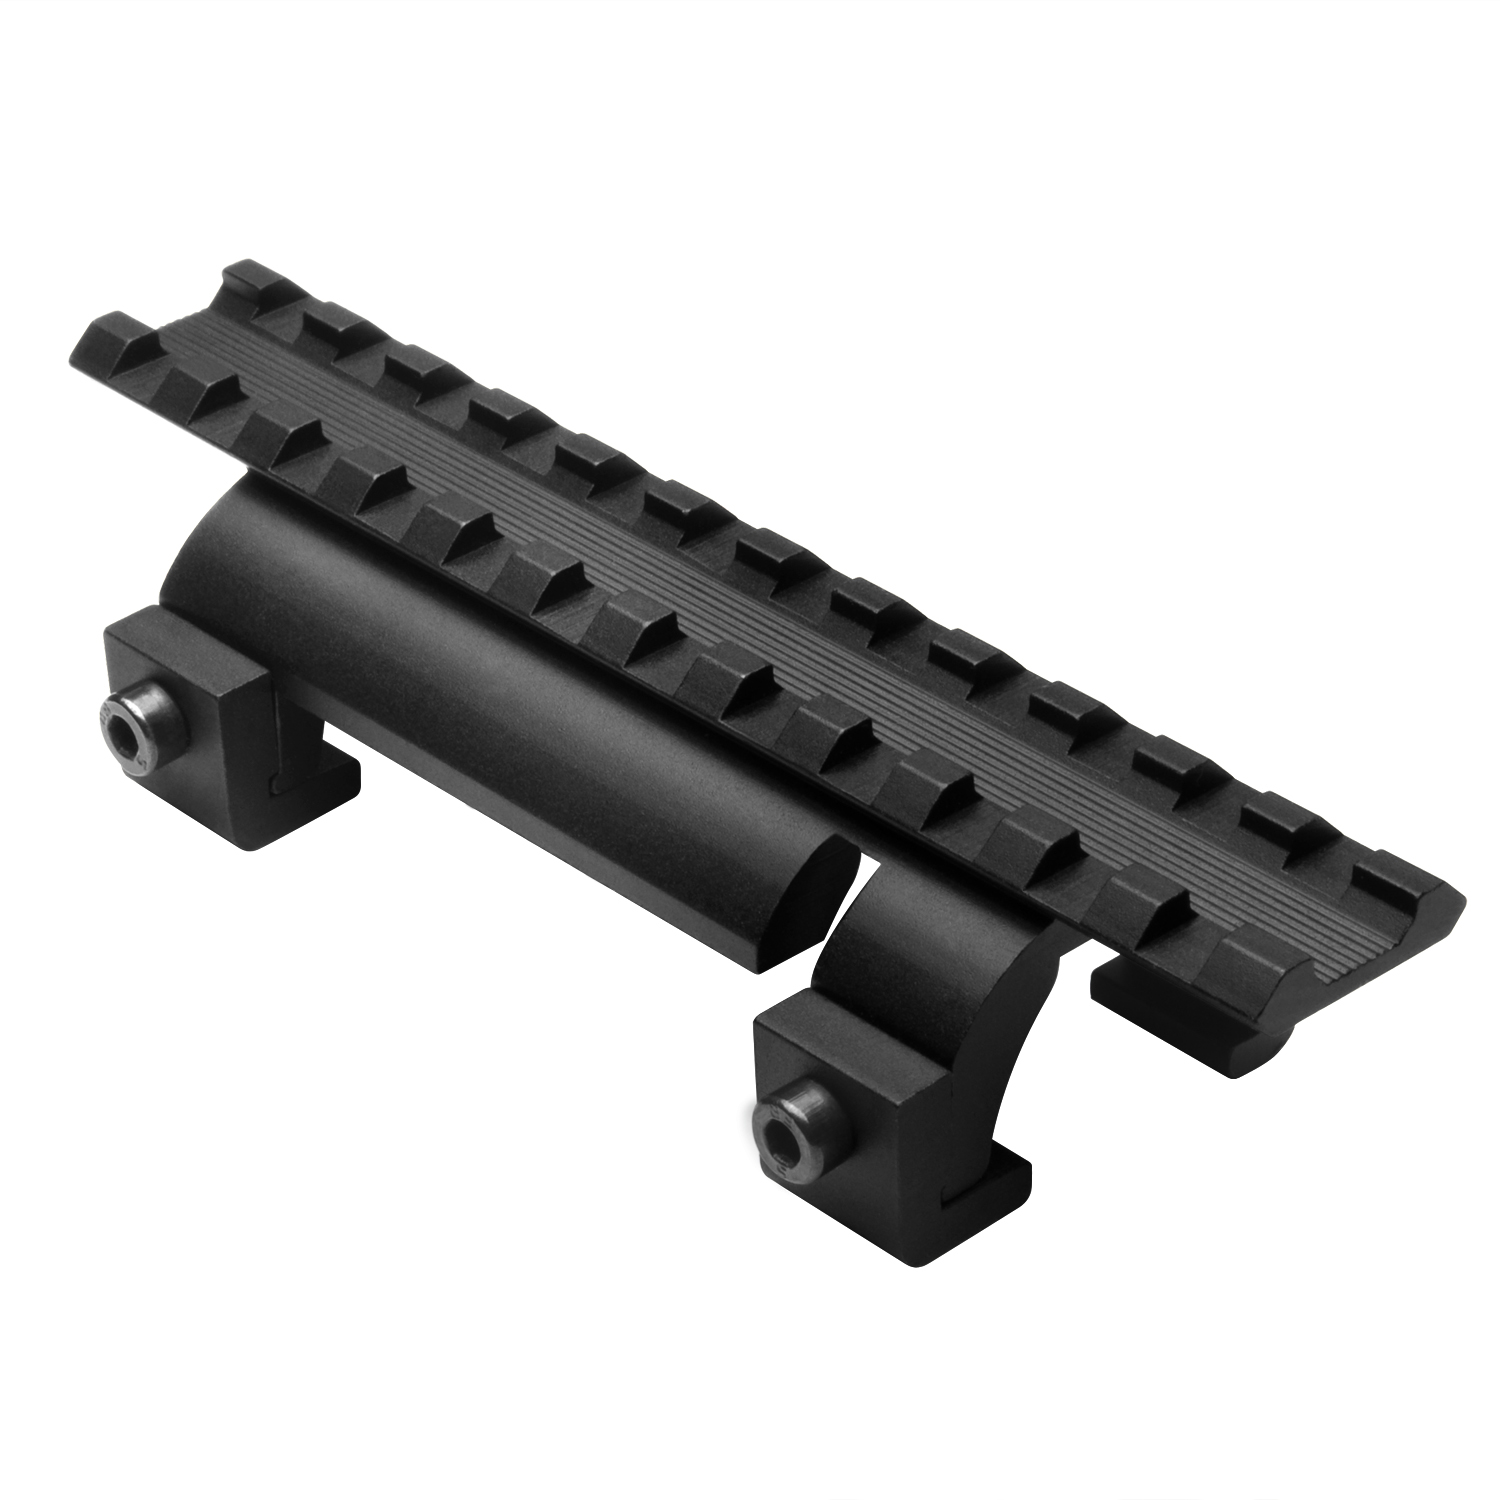 Ncstar MP5 Weaver Style Rail Clamp Mount